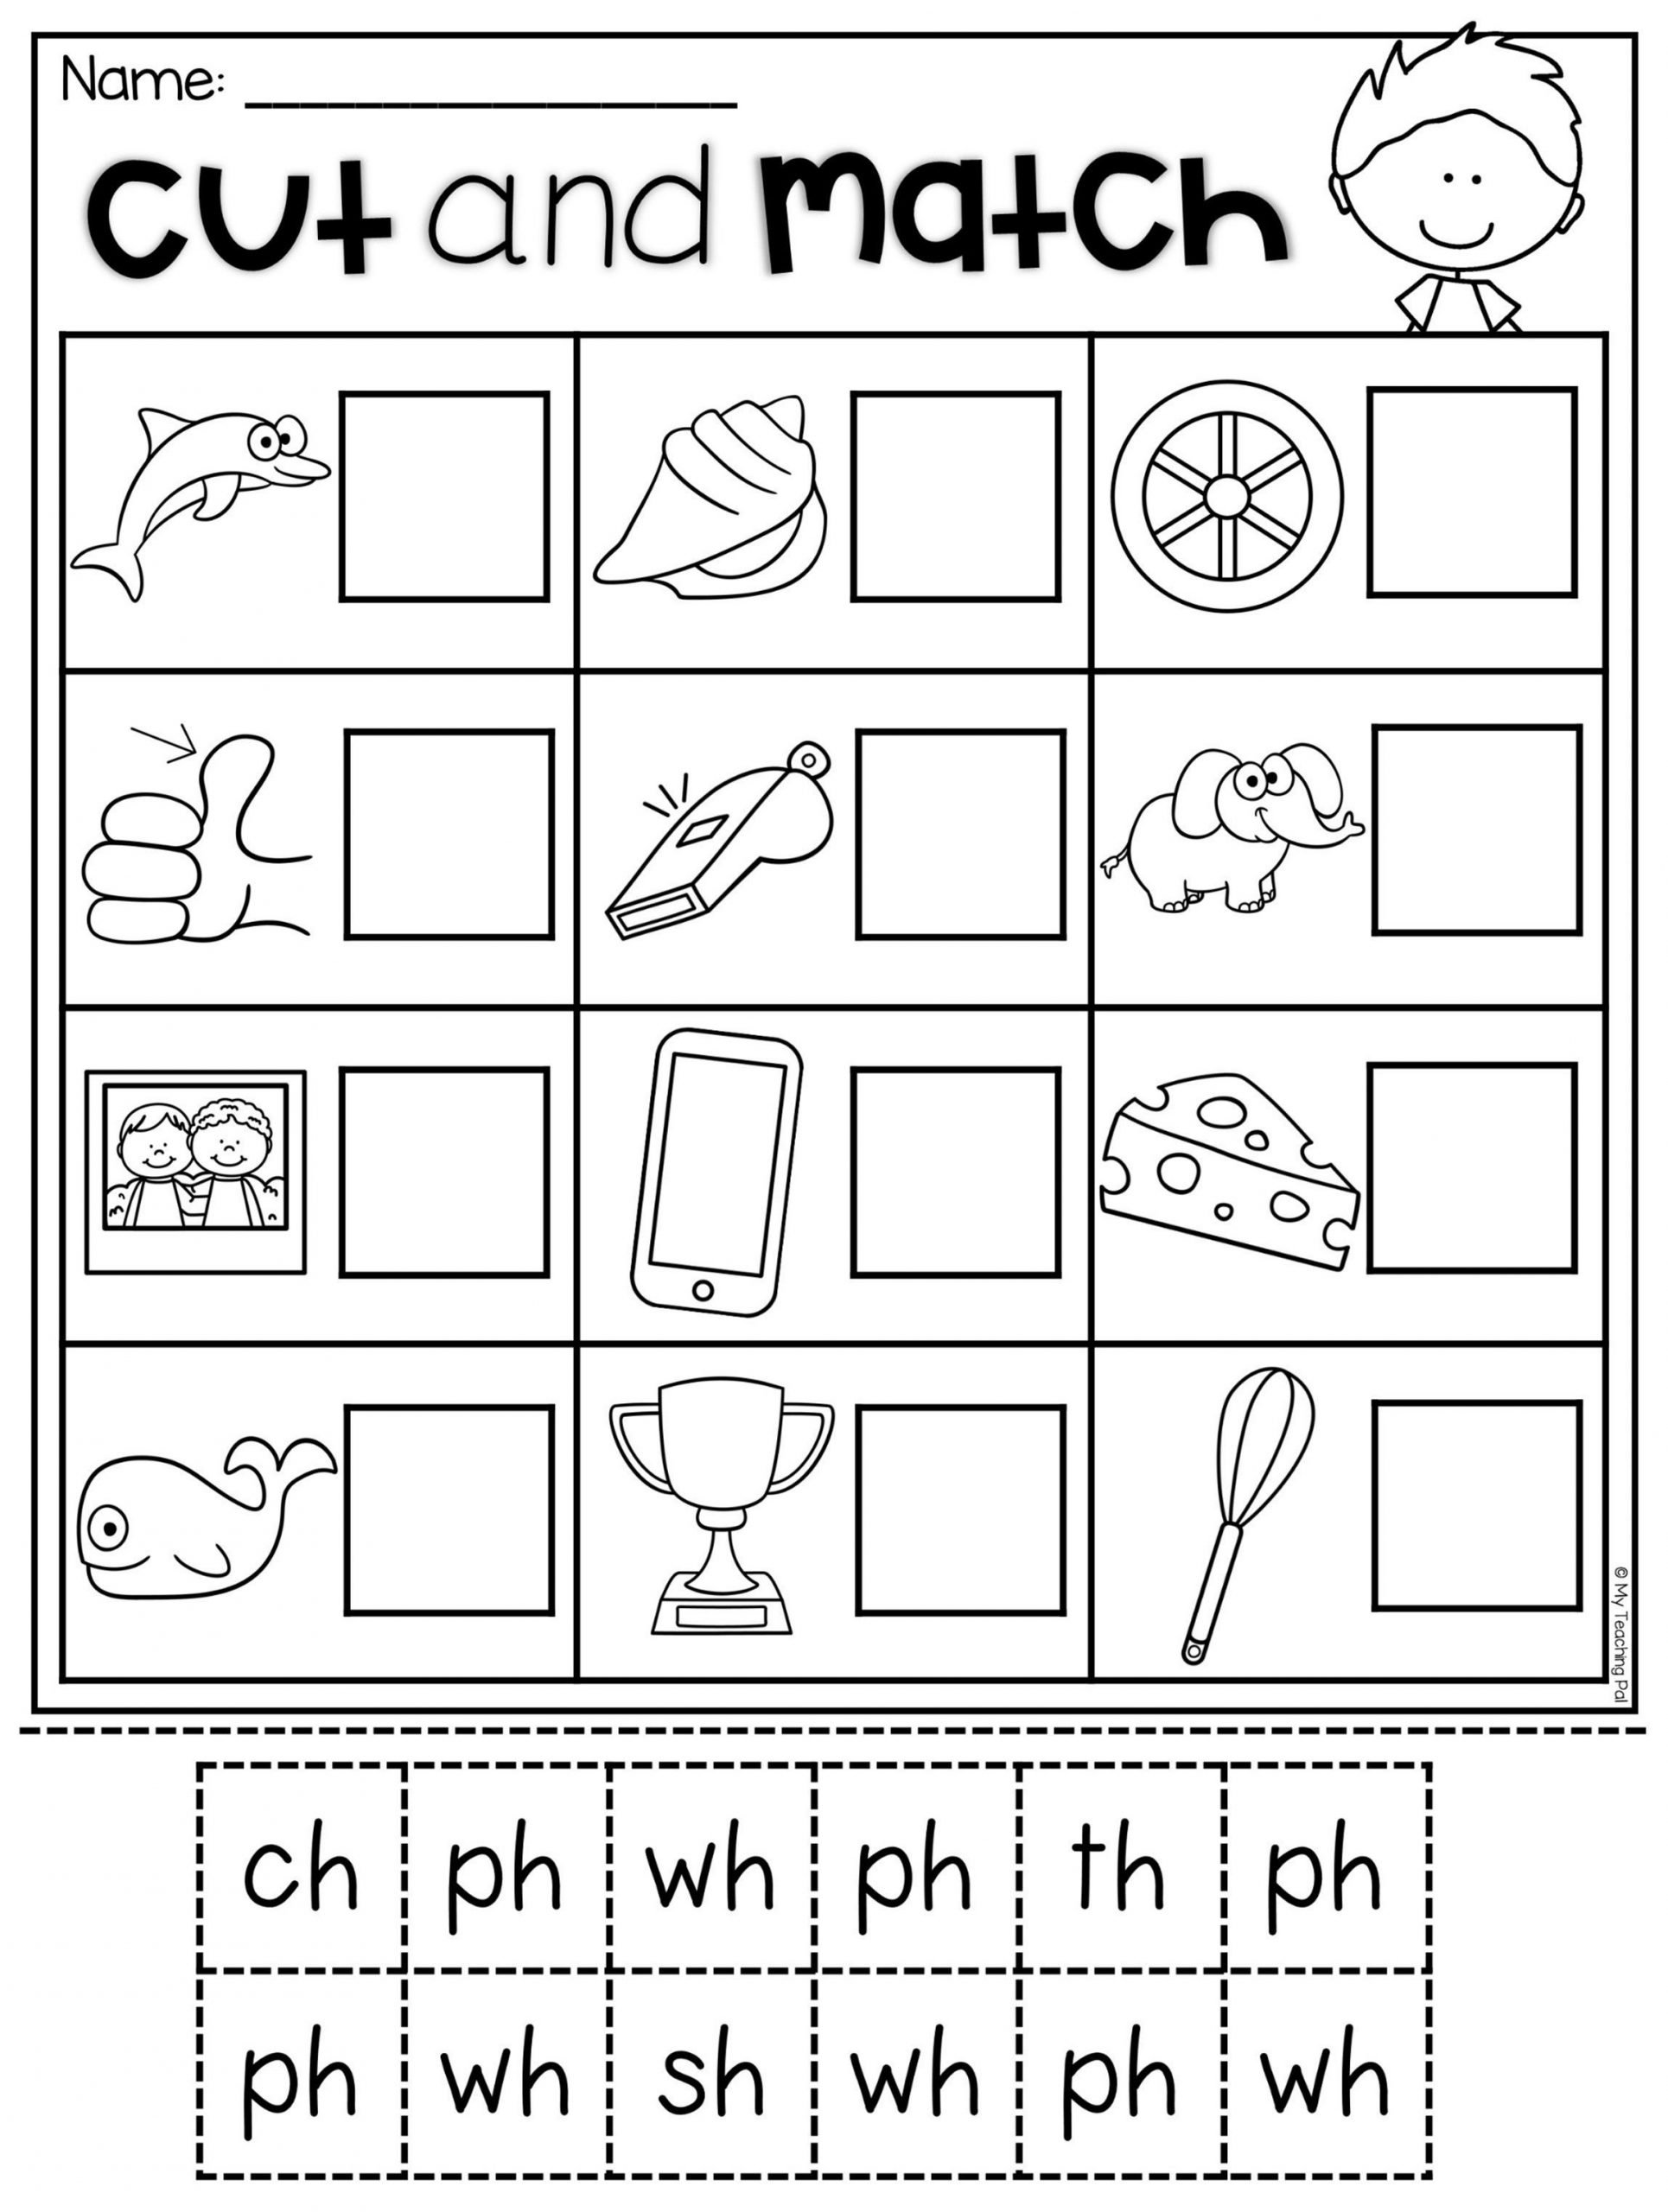 Ch Worksheets for Kindergarten Digraph Worksheet Packet Ch Sh Th Wh Ph